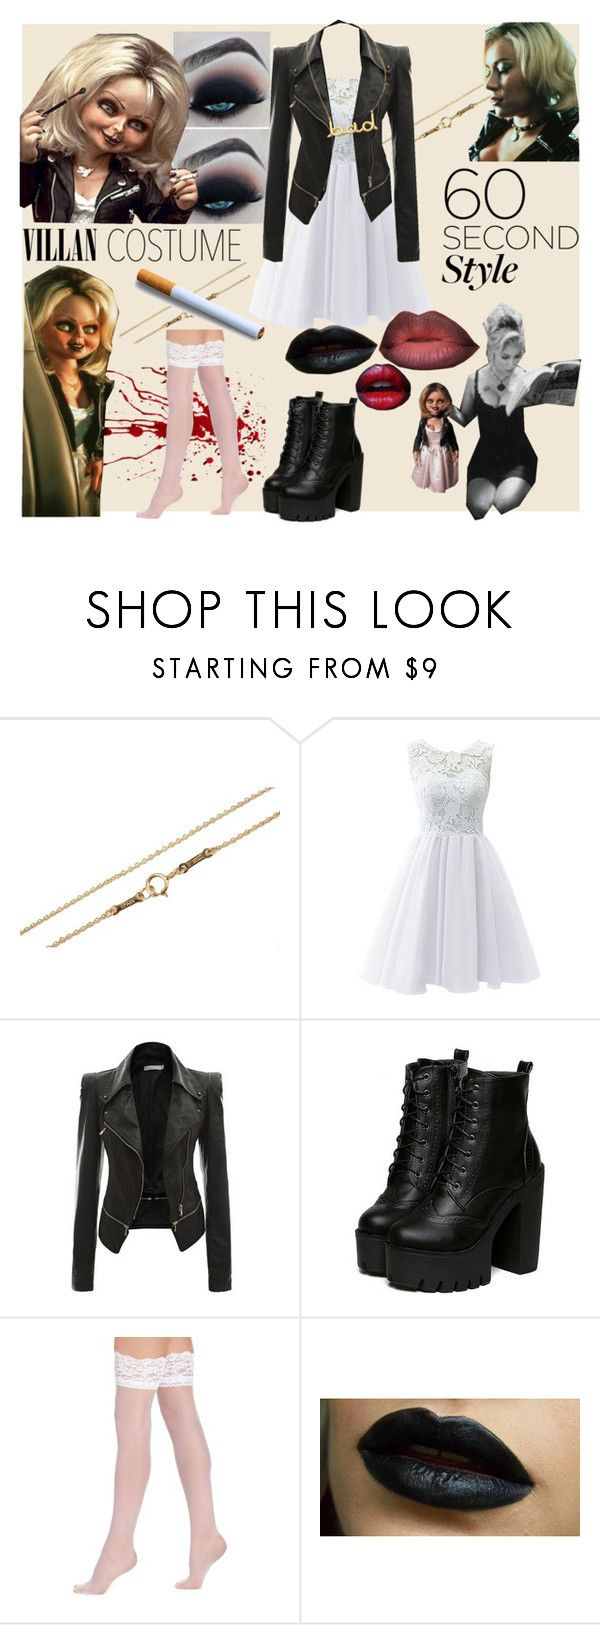 """Bride of Chucky"" by soamazinq on Polyvore featuring Tiffany & Co., Berkshire, Meredith Hahn, Halloween, 60secondstyle and villaincostume"